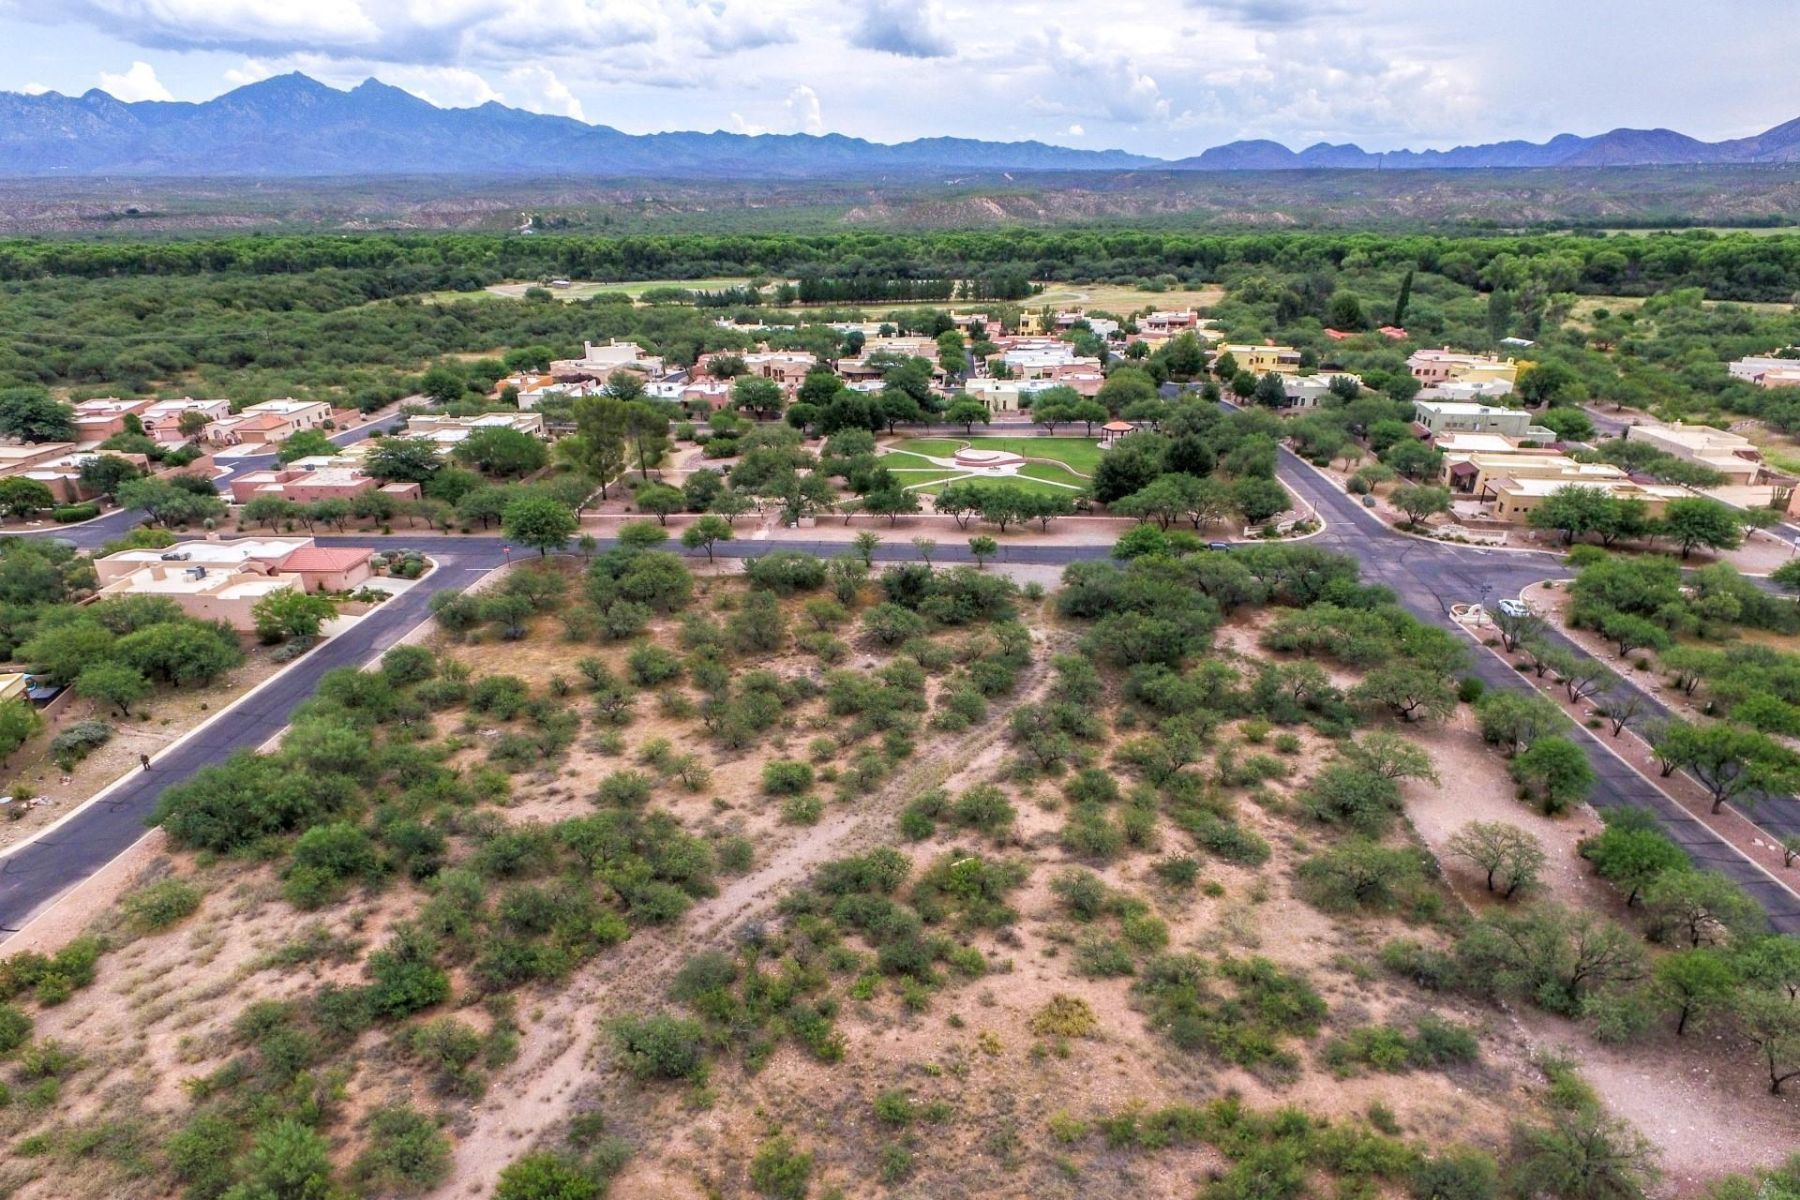 Land for Sale at Very Well Located Property Tbd Calle Frida Kahlo Block 3, Tubac, Arizona, 85646 United States